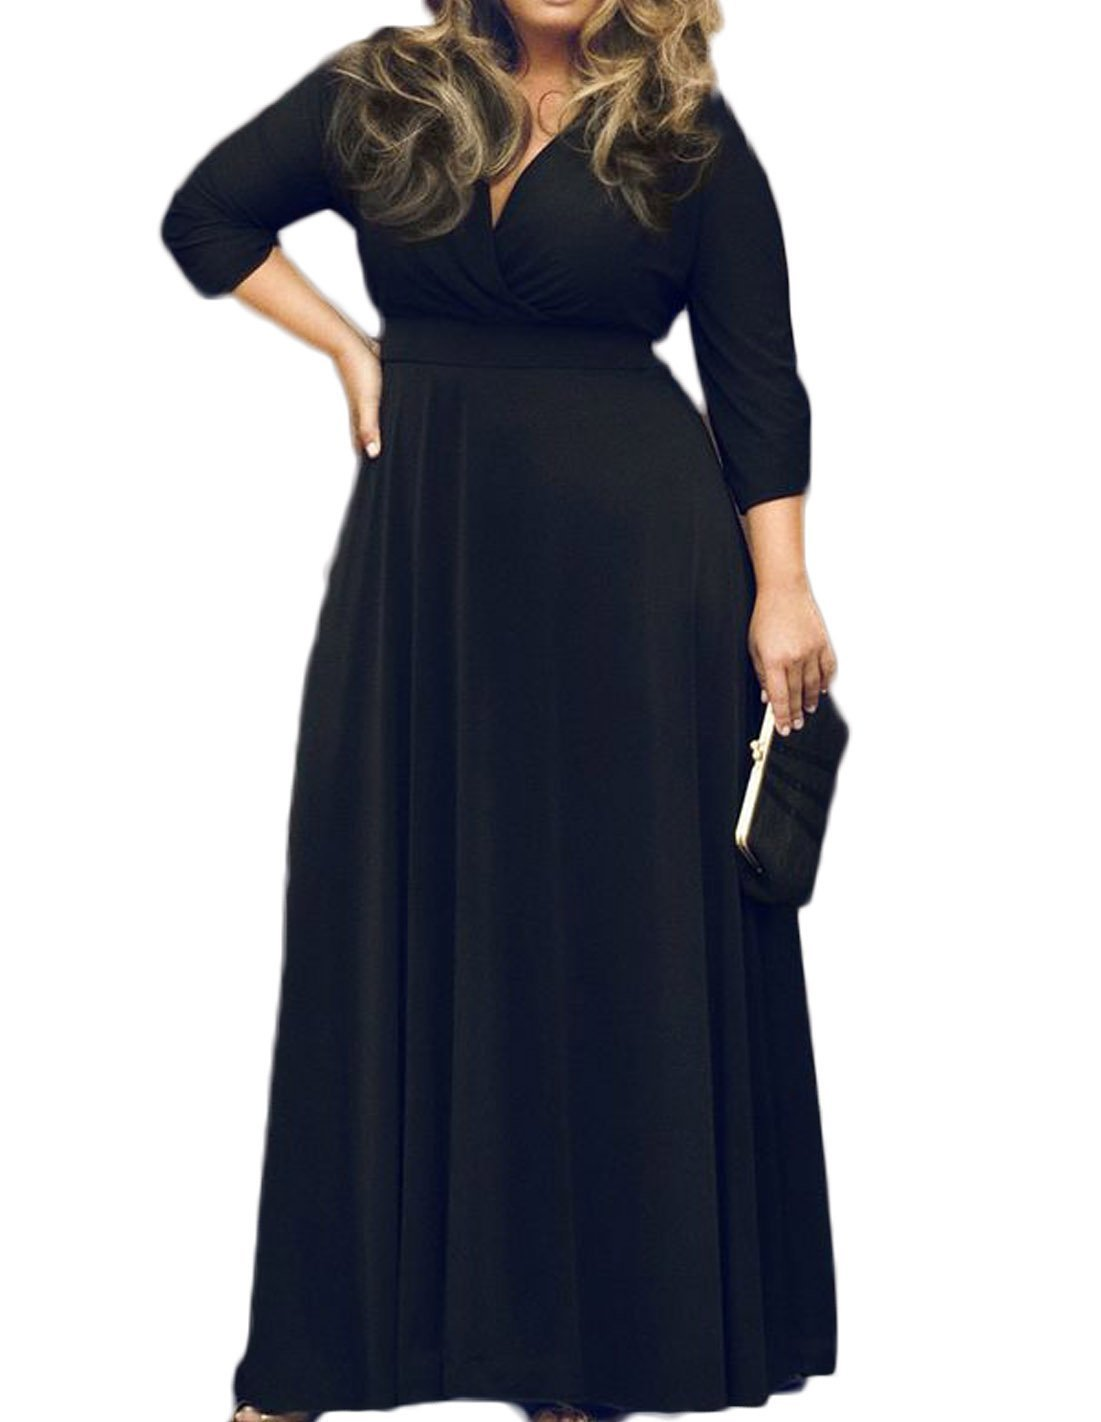 Plus Size Dresses - Womens Plus Size Deep V Neck Wrap Ruched Waisted Bodycon Dress